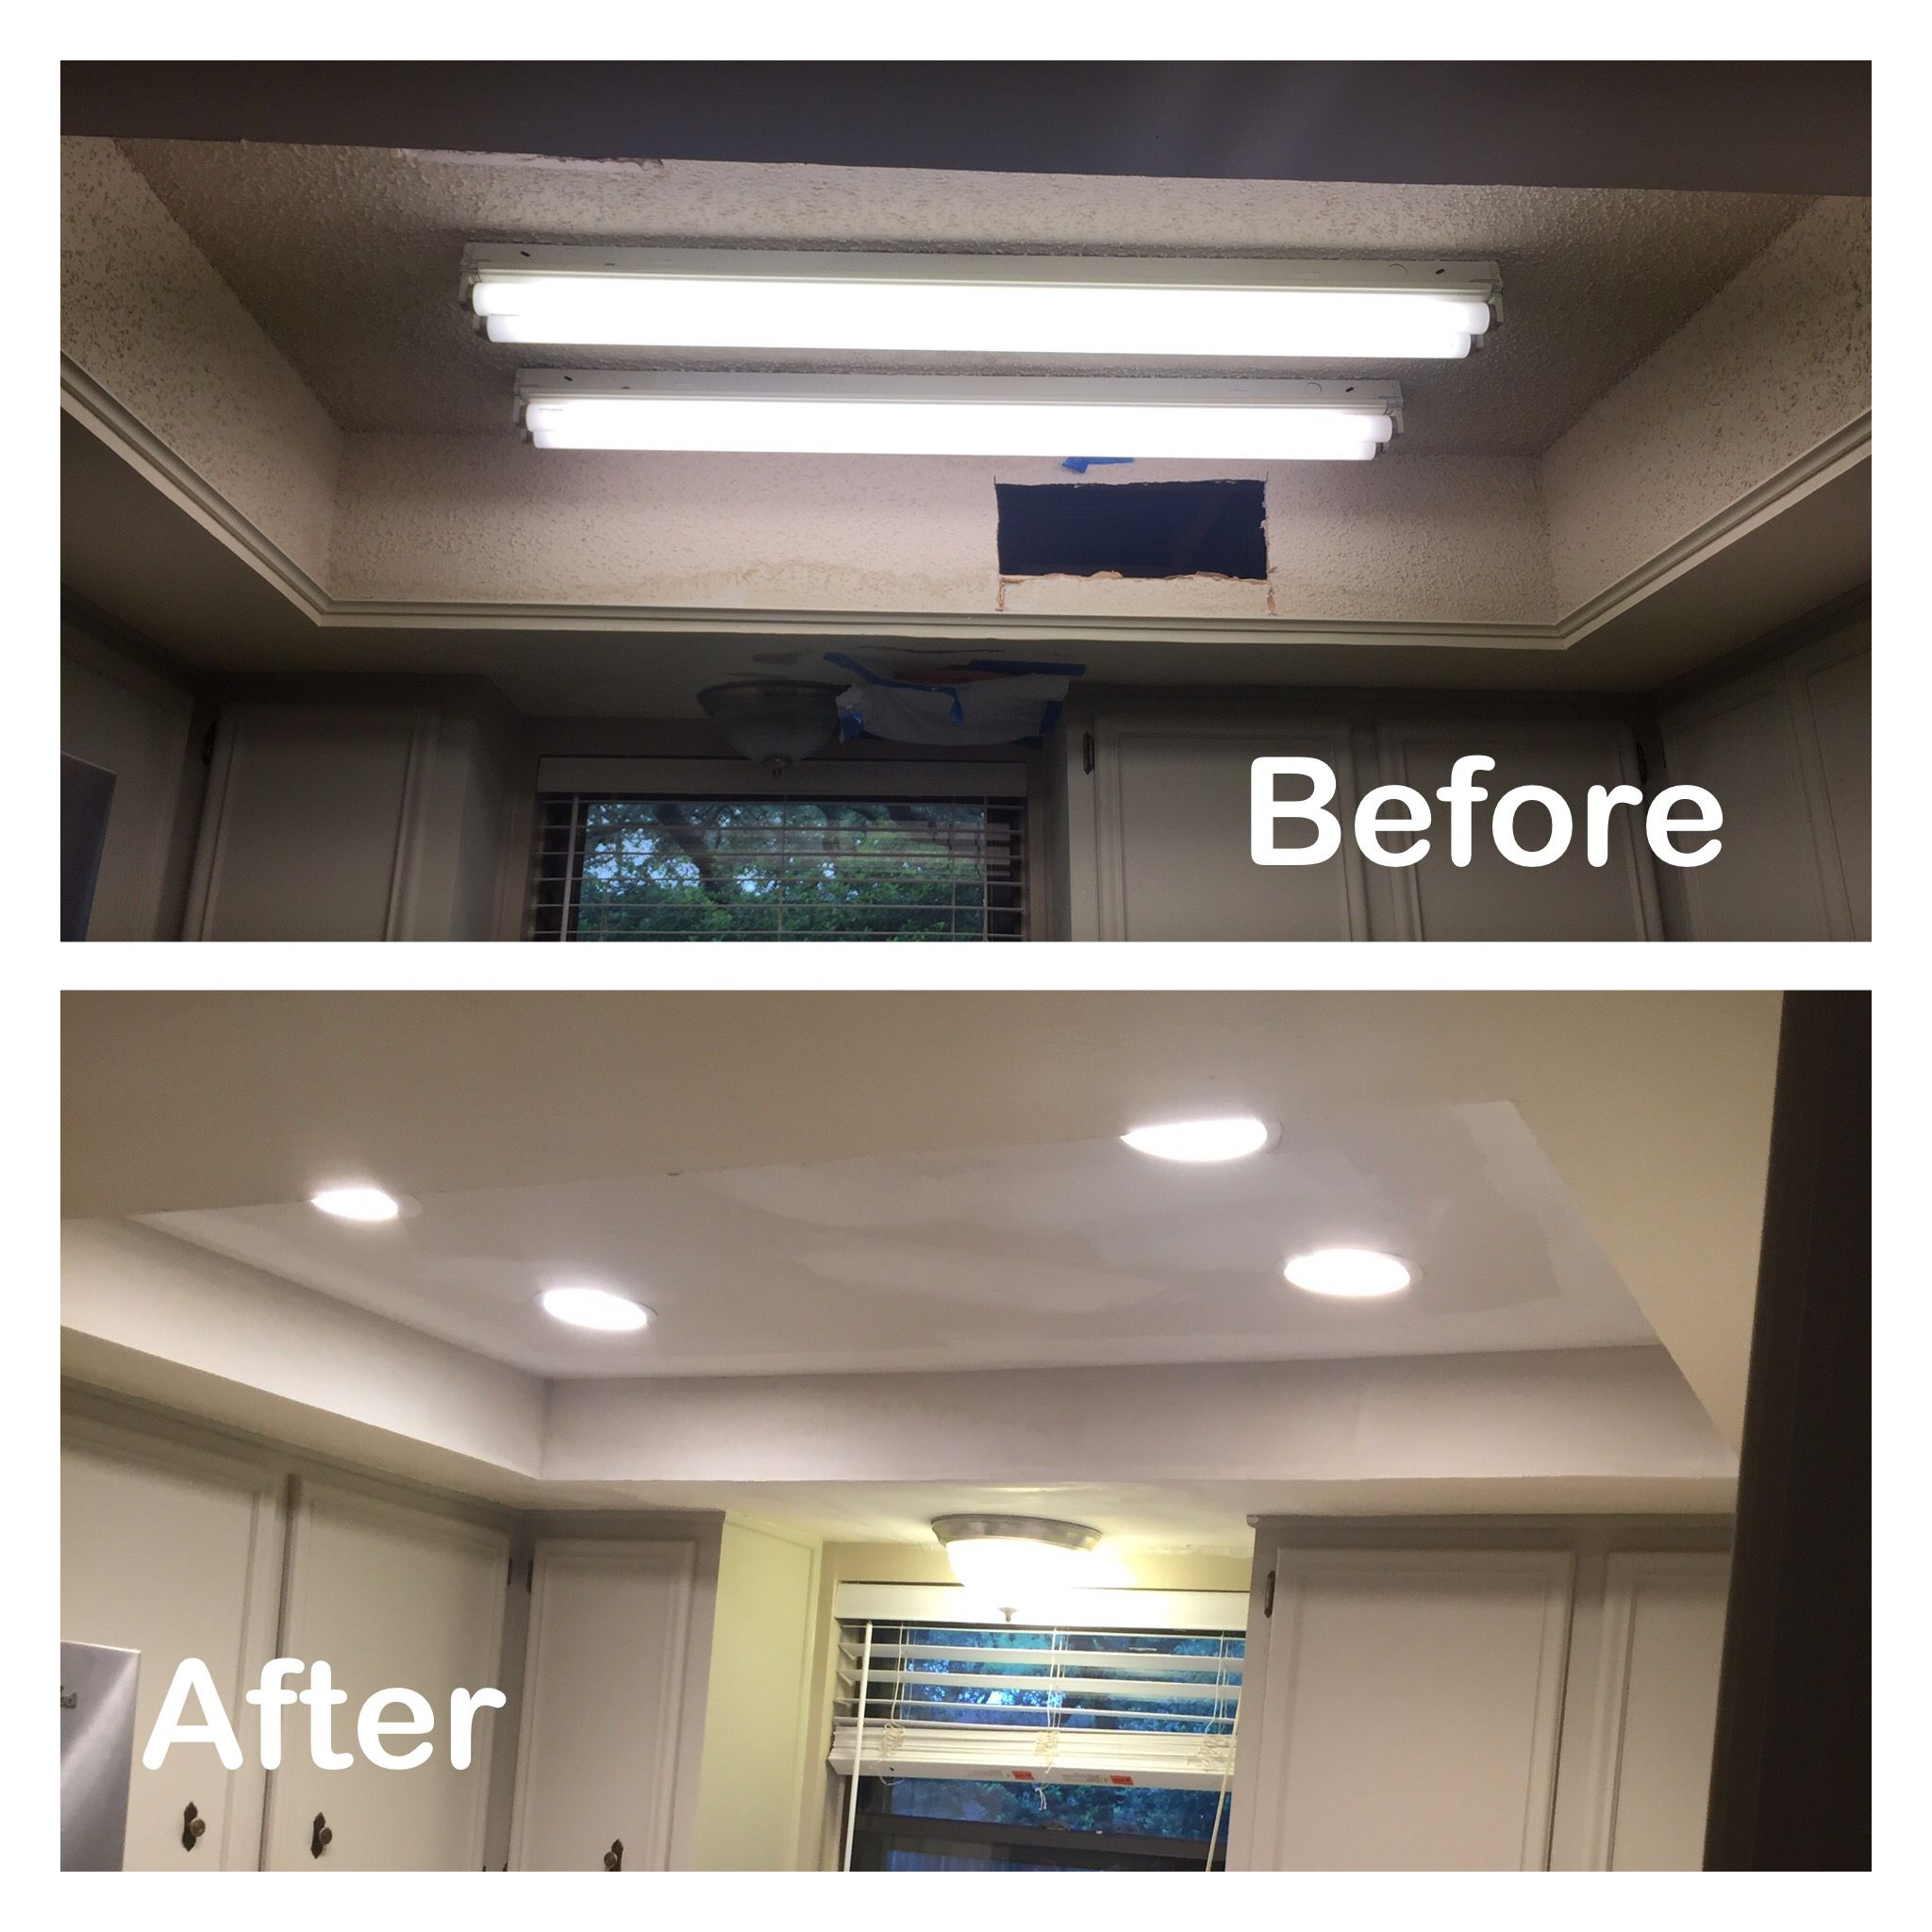 1970s Kitchen Light Box Before And After Fluorescent